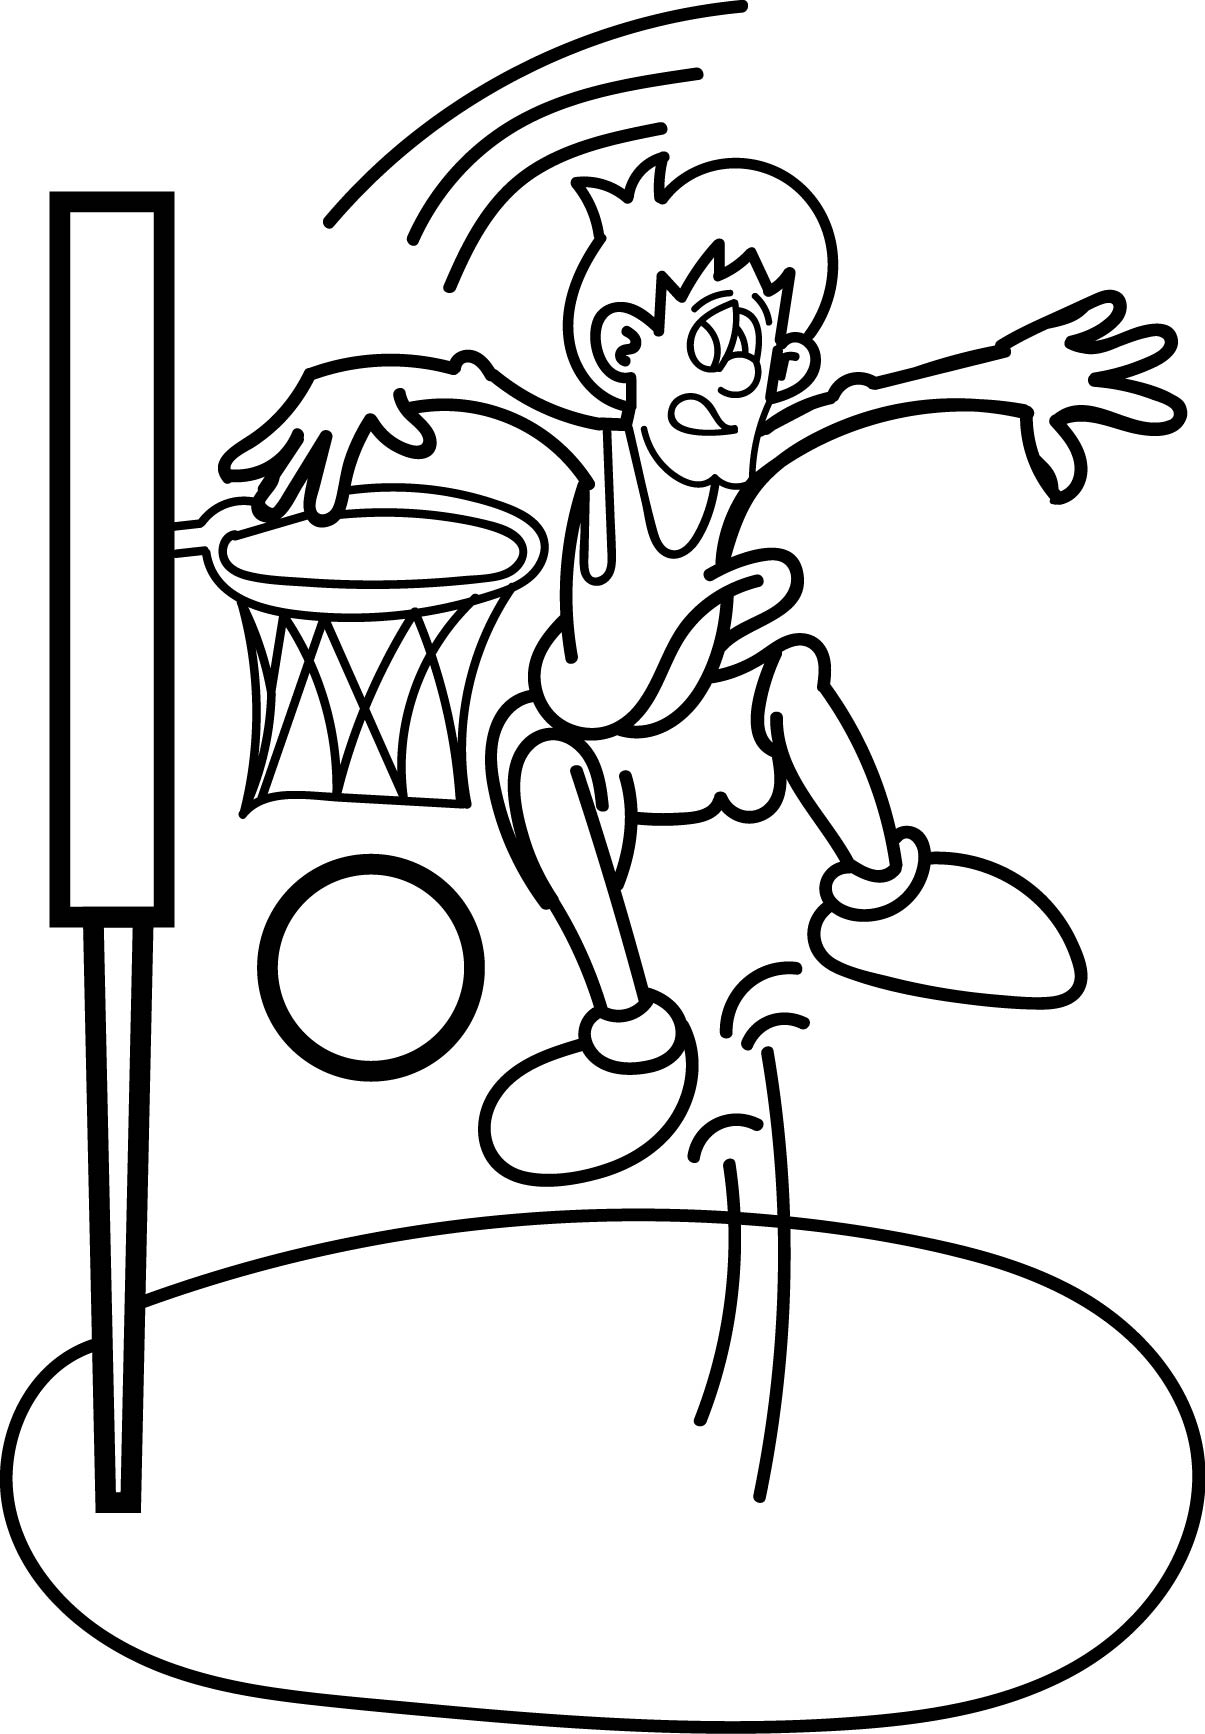 1205x1734 Basketball Player Coloring Pages Wecoloringpage